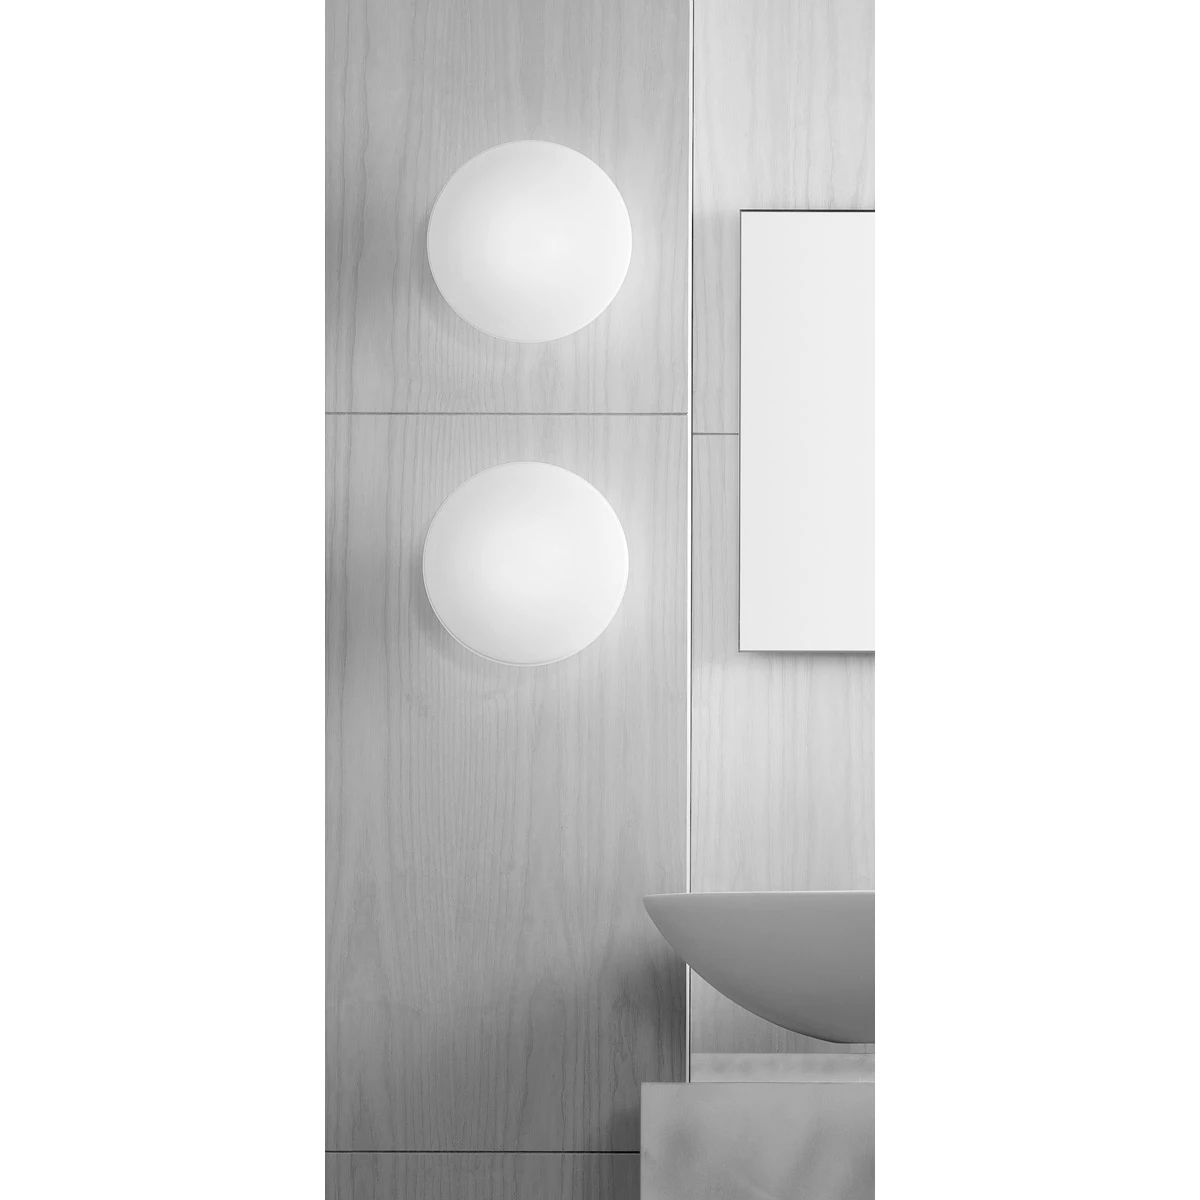 Louis Poulsen AJ Eklipta Wall Sconce - LED Small